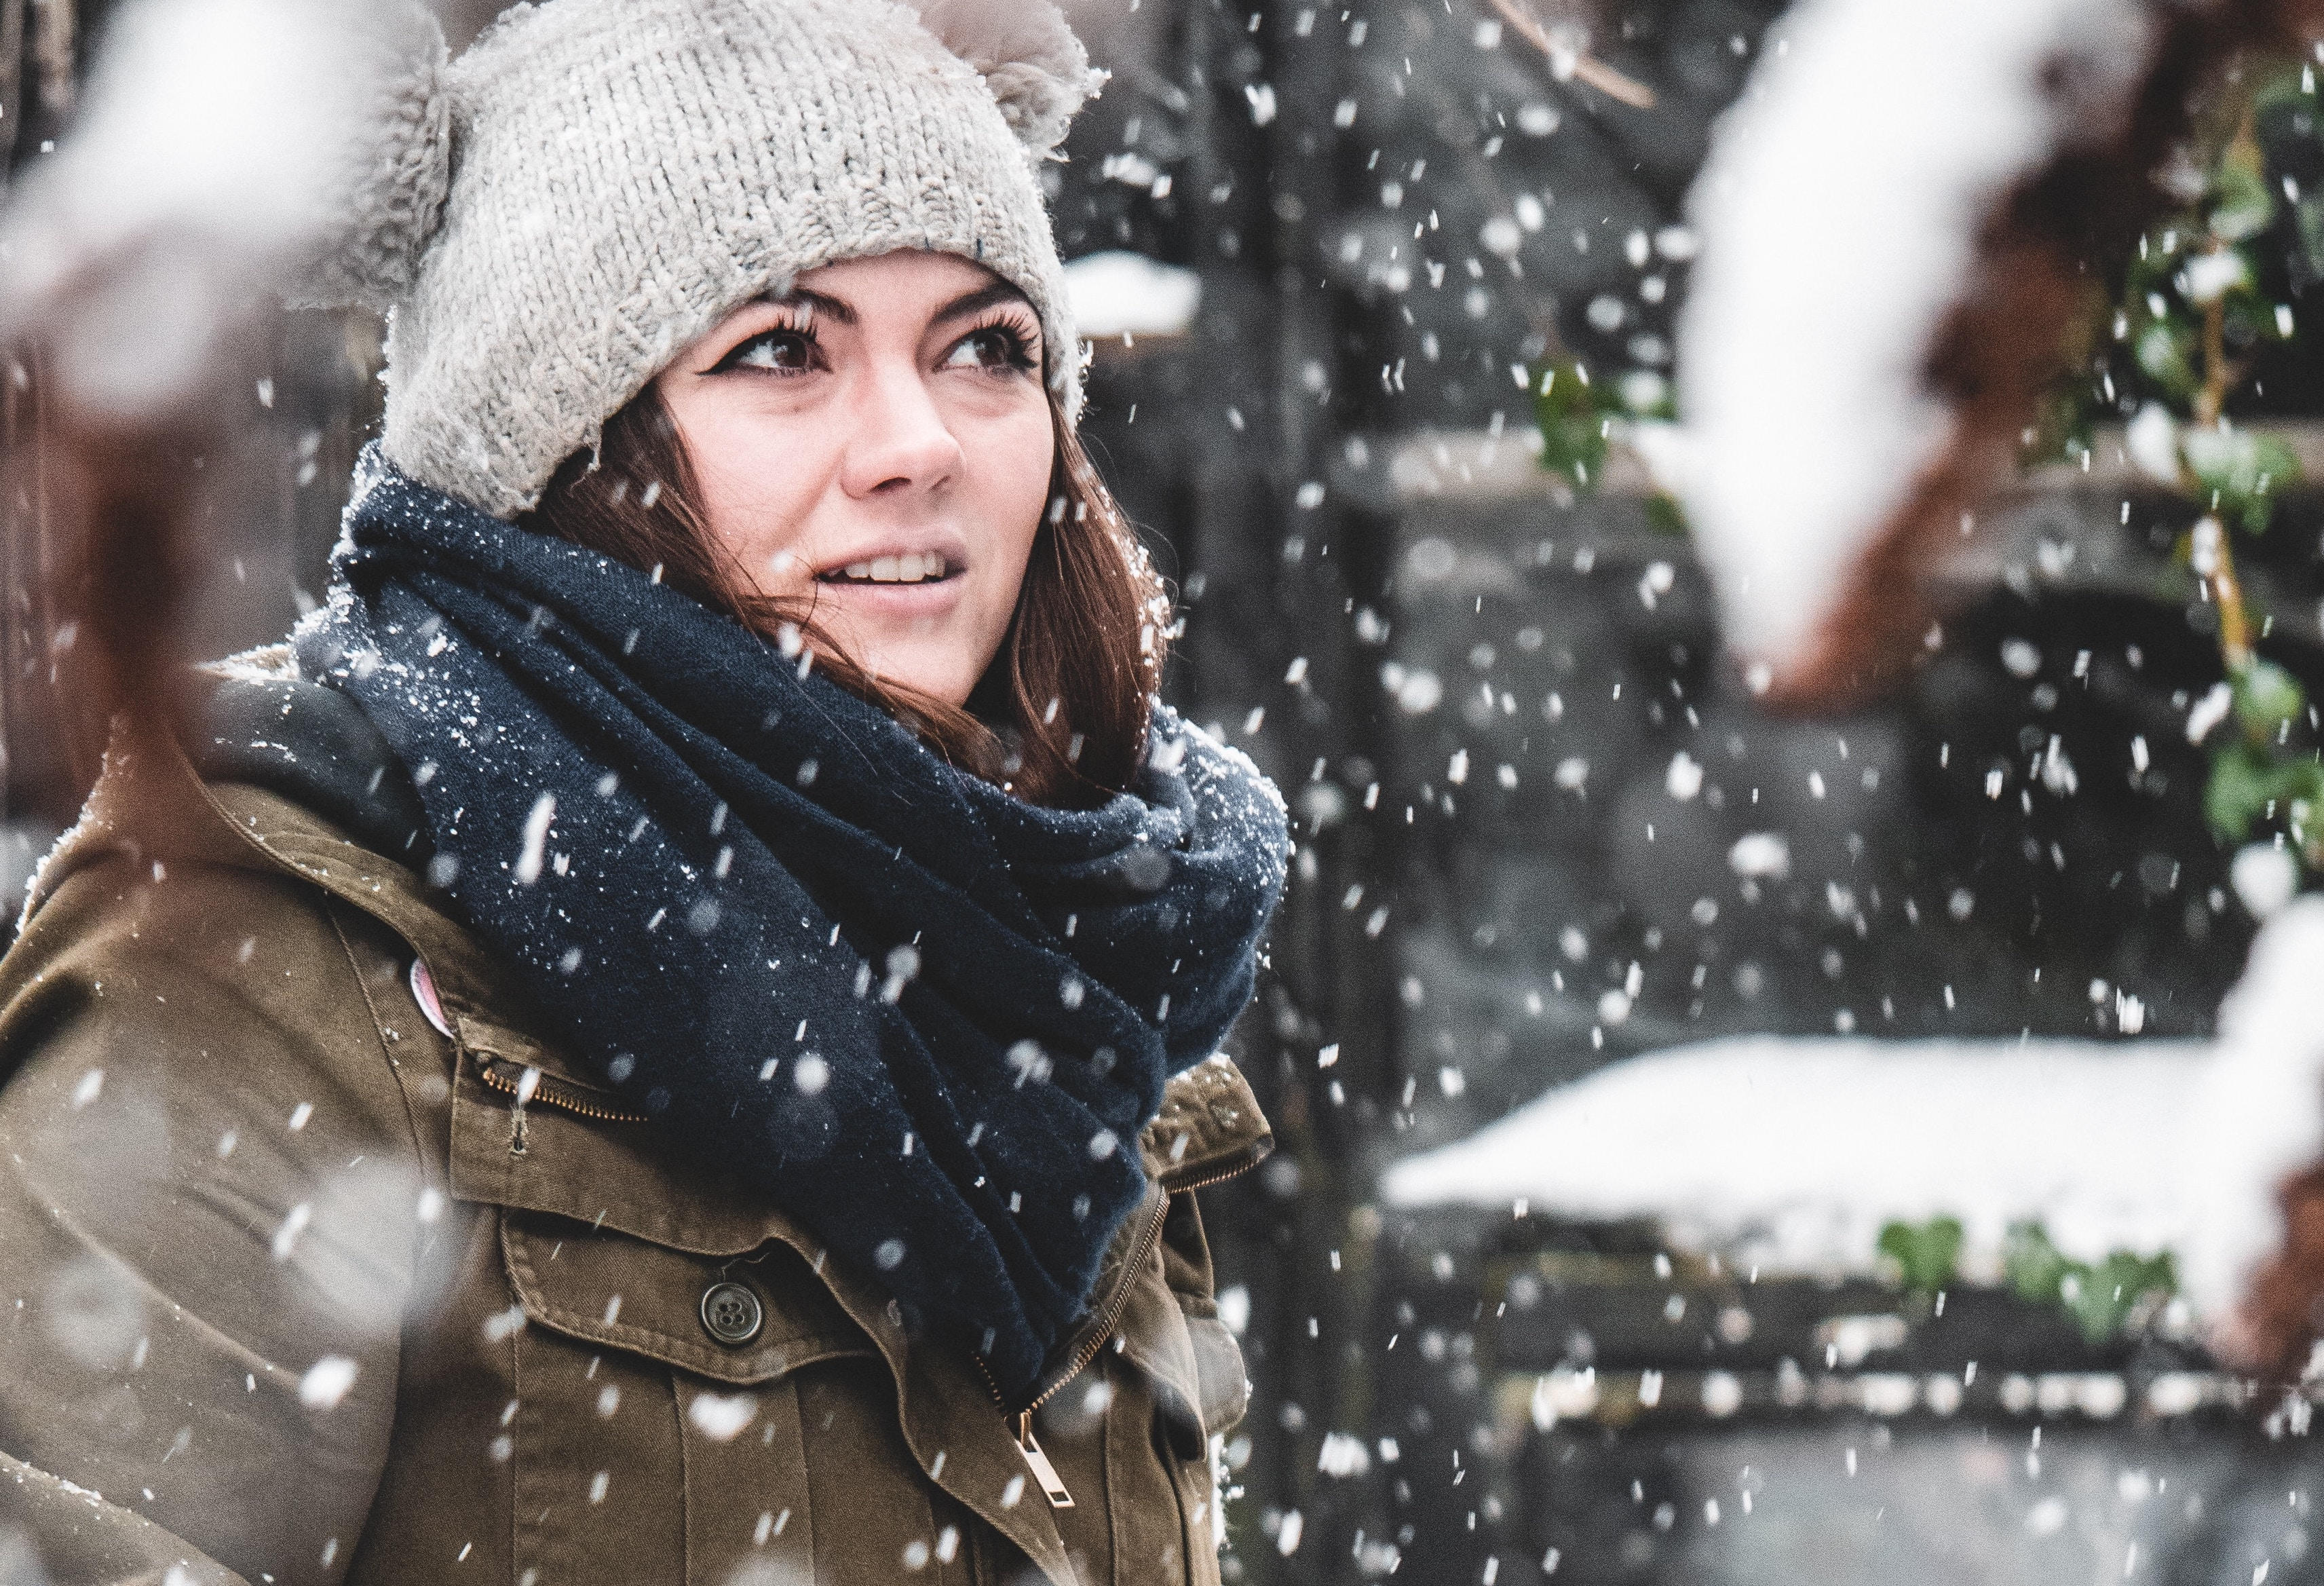 5 Tips for Glowing Winter Skin